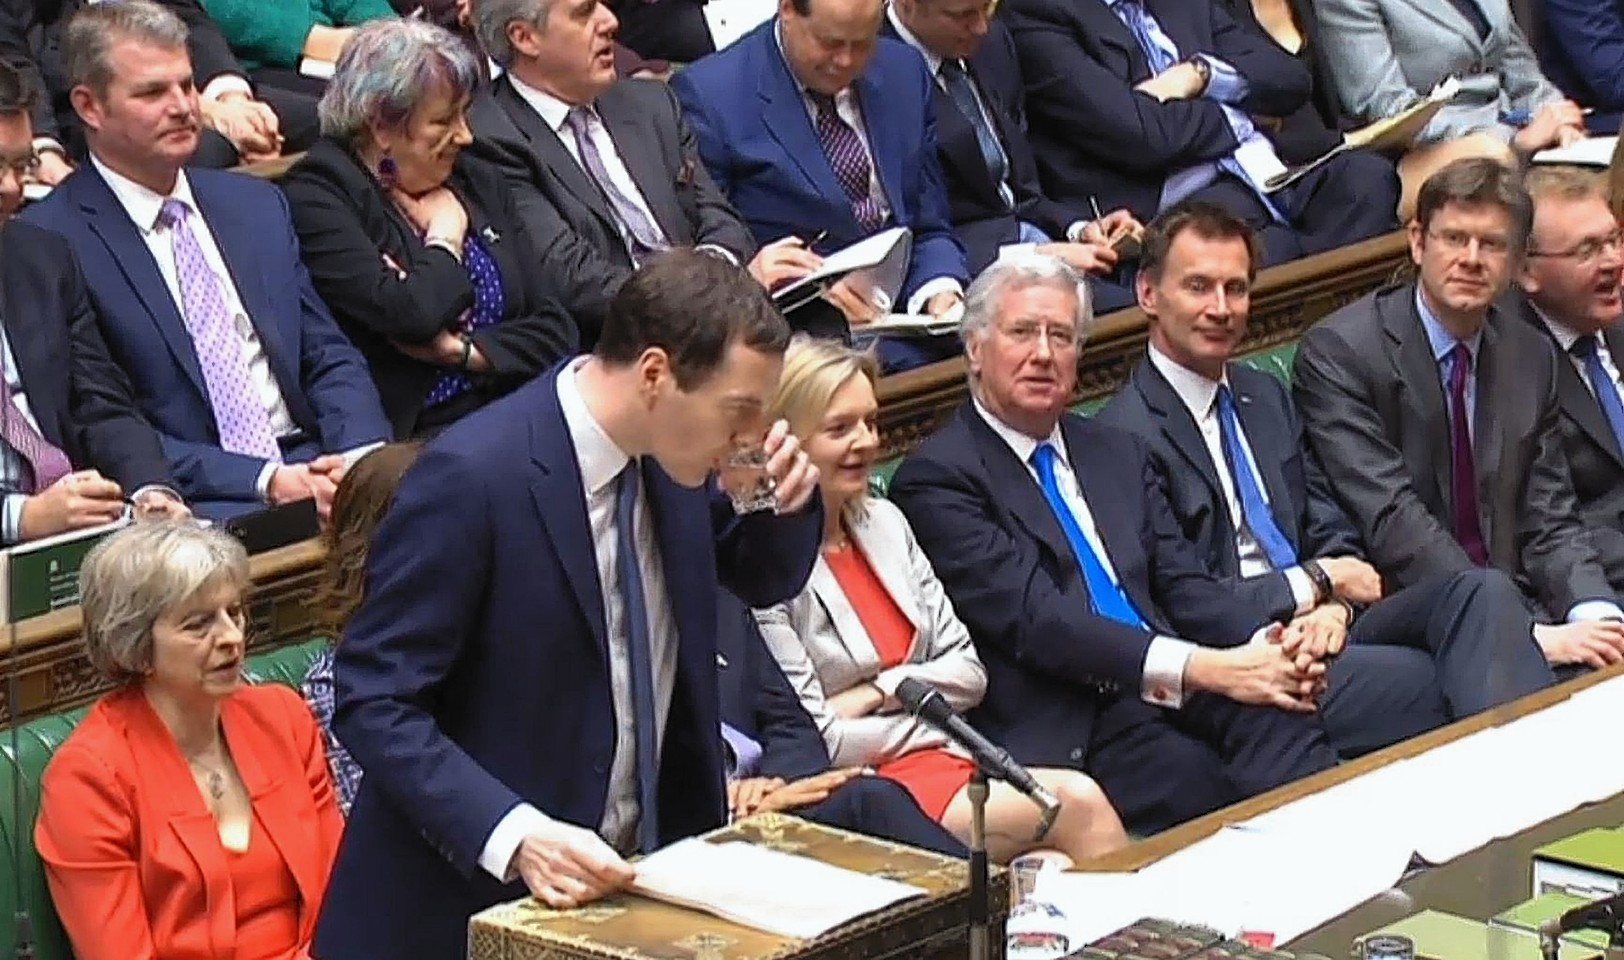 Chancellor of the Exchequer George Osborne pauses for a drink as he delivers his Budget statement to the House of Commons